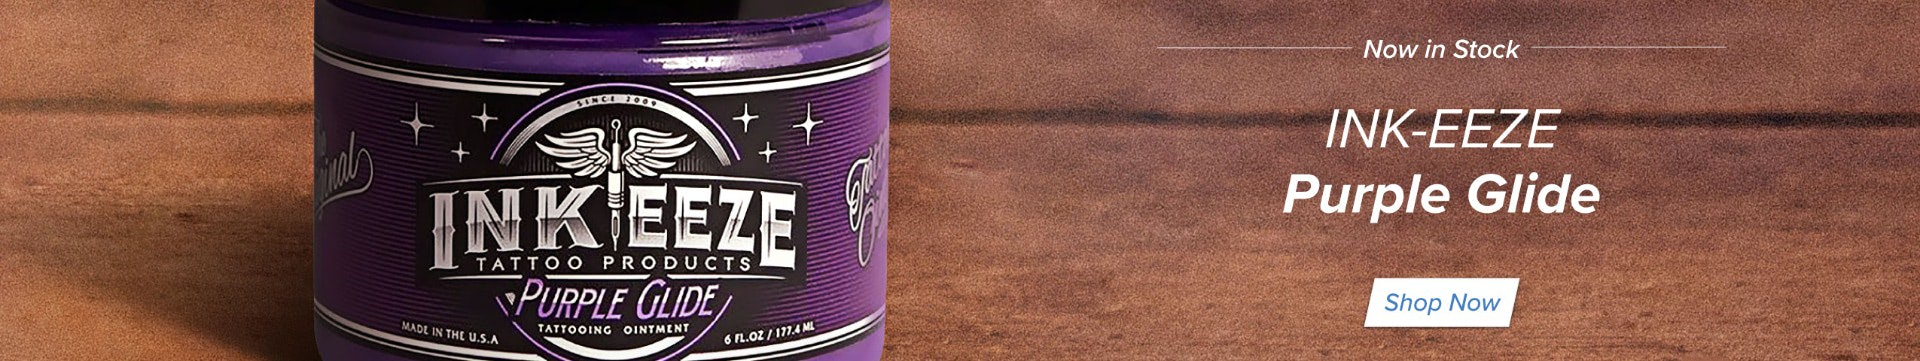 INK-EEZE Purple Glide Tattooing Ointment